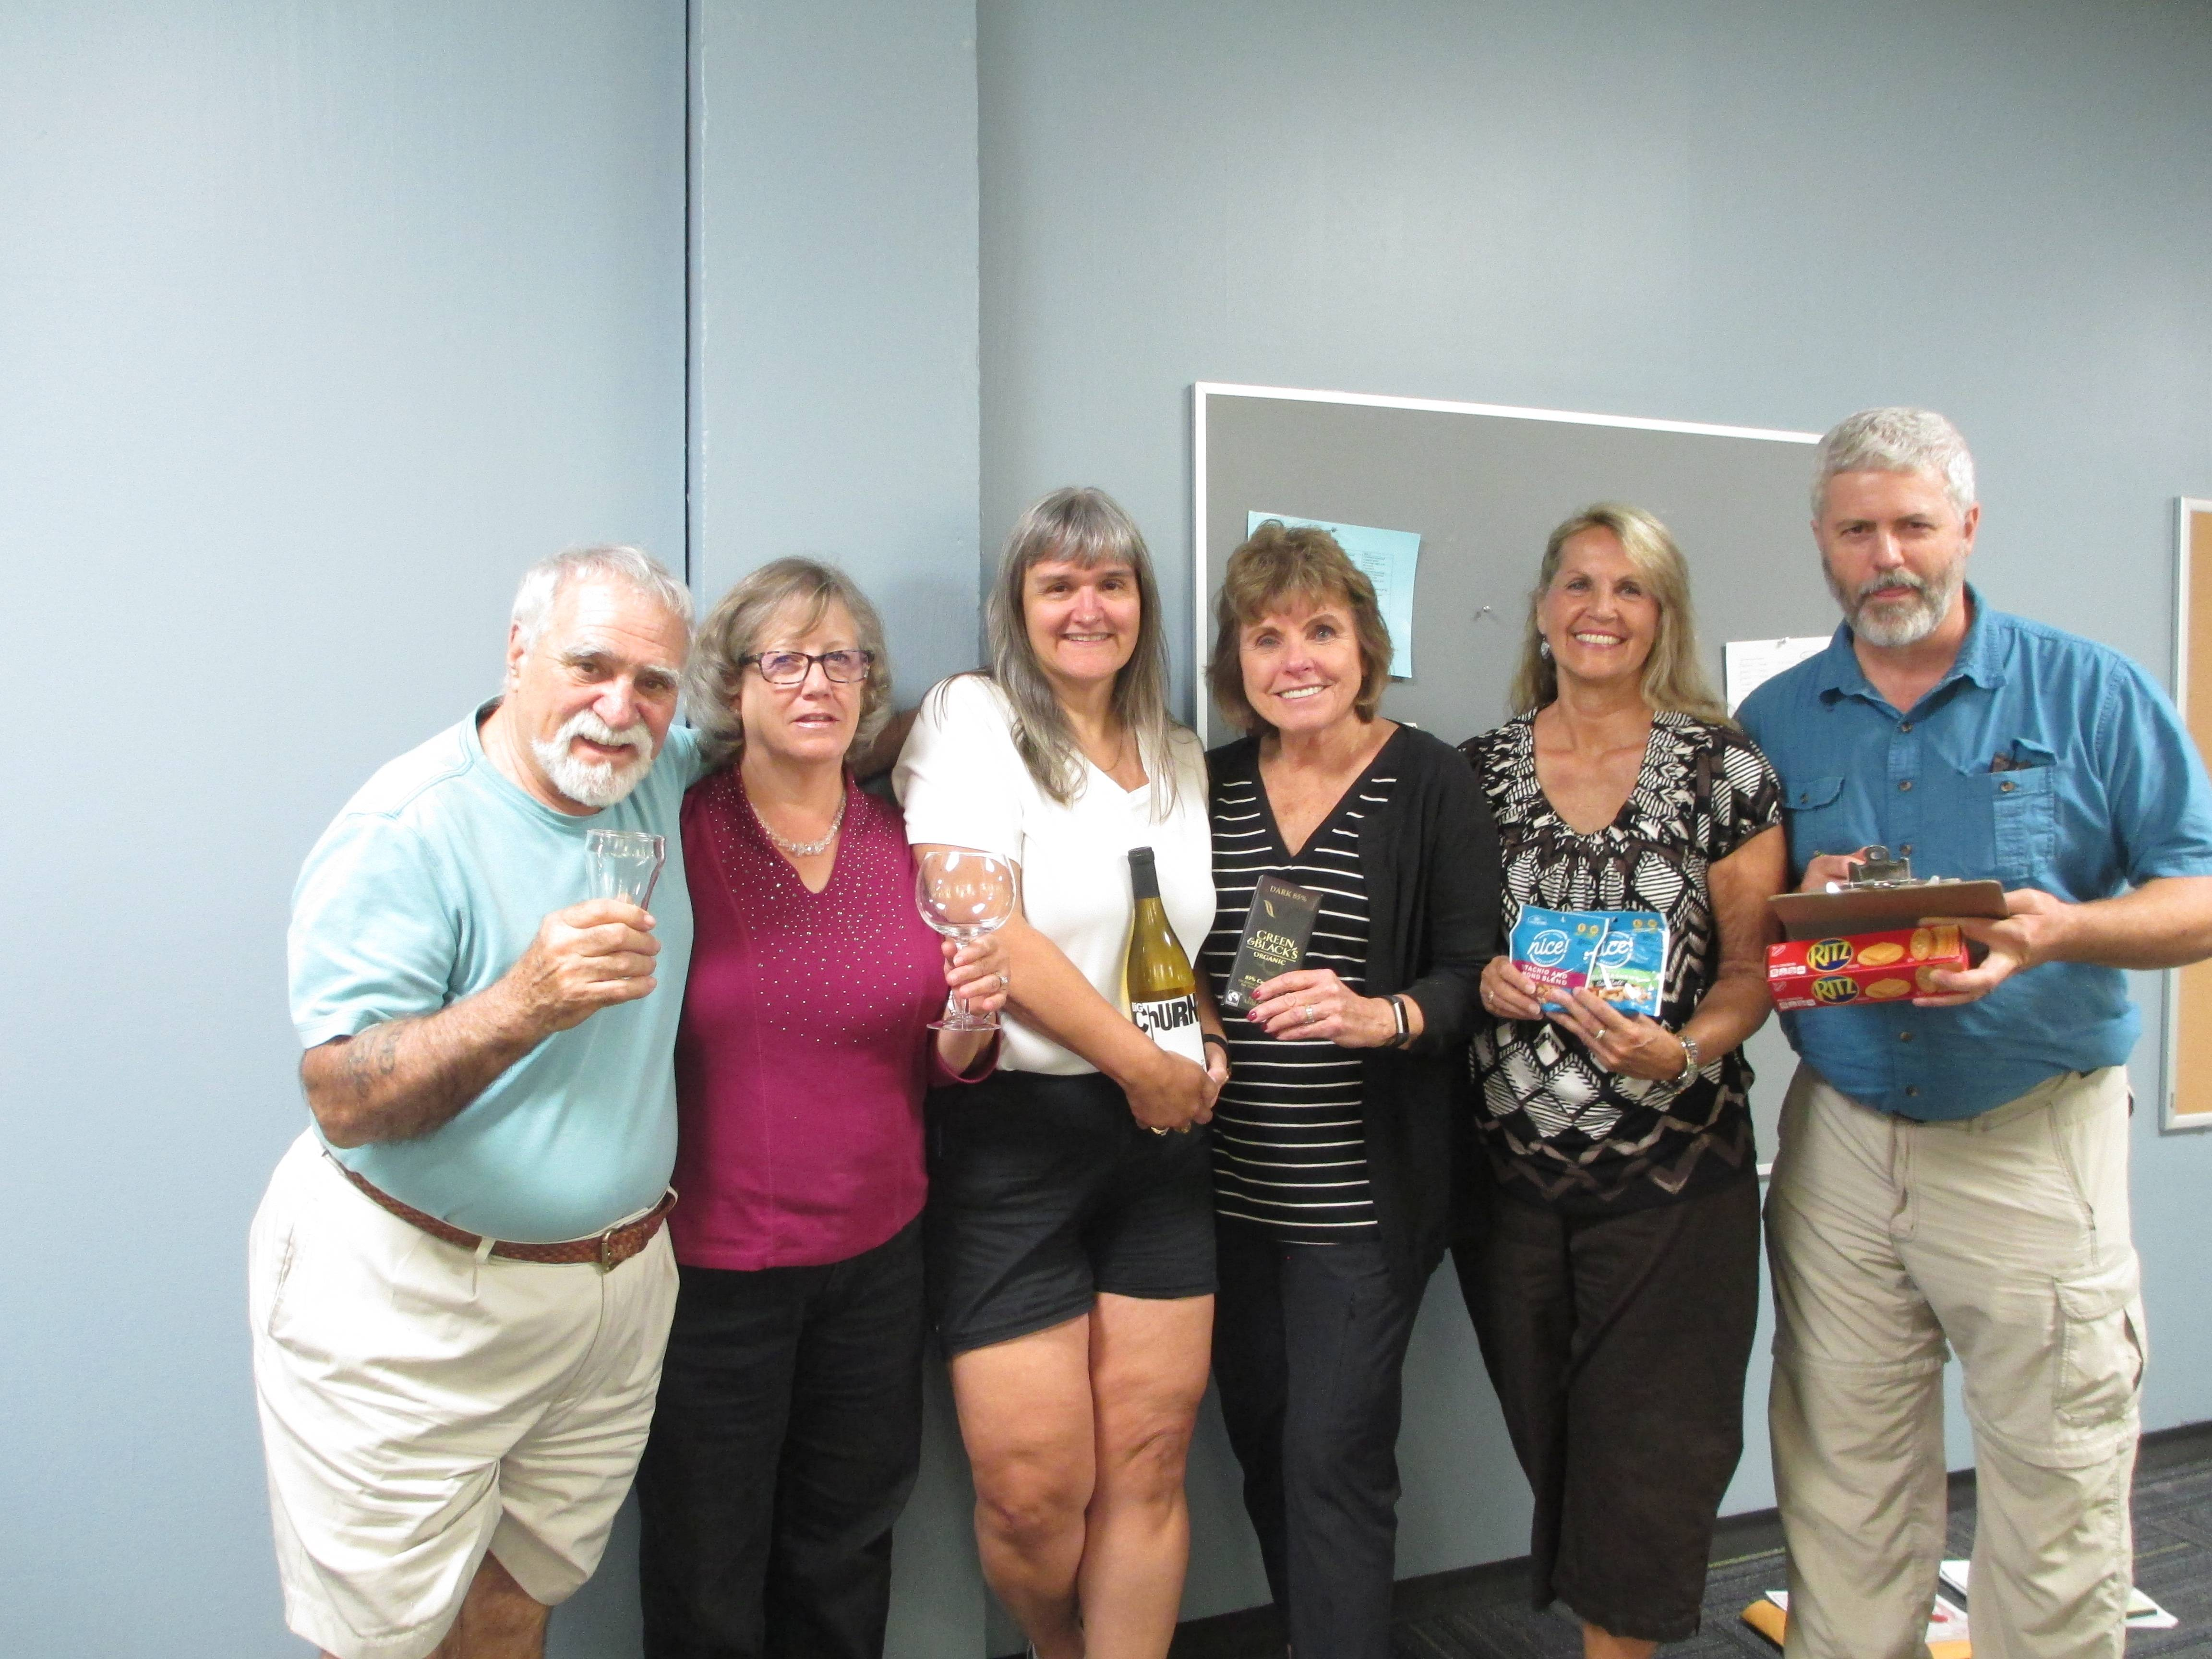 Members of The Festival Chorus Ways and Means Committee plan for the October 14 Wine Tasting. Pictured left to right are Chip LaCasse, Cathy Myles, Monica Kort, Maddie Barrett, Marcy Heston and Jamie Myles